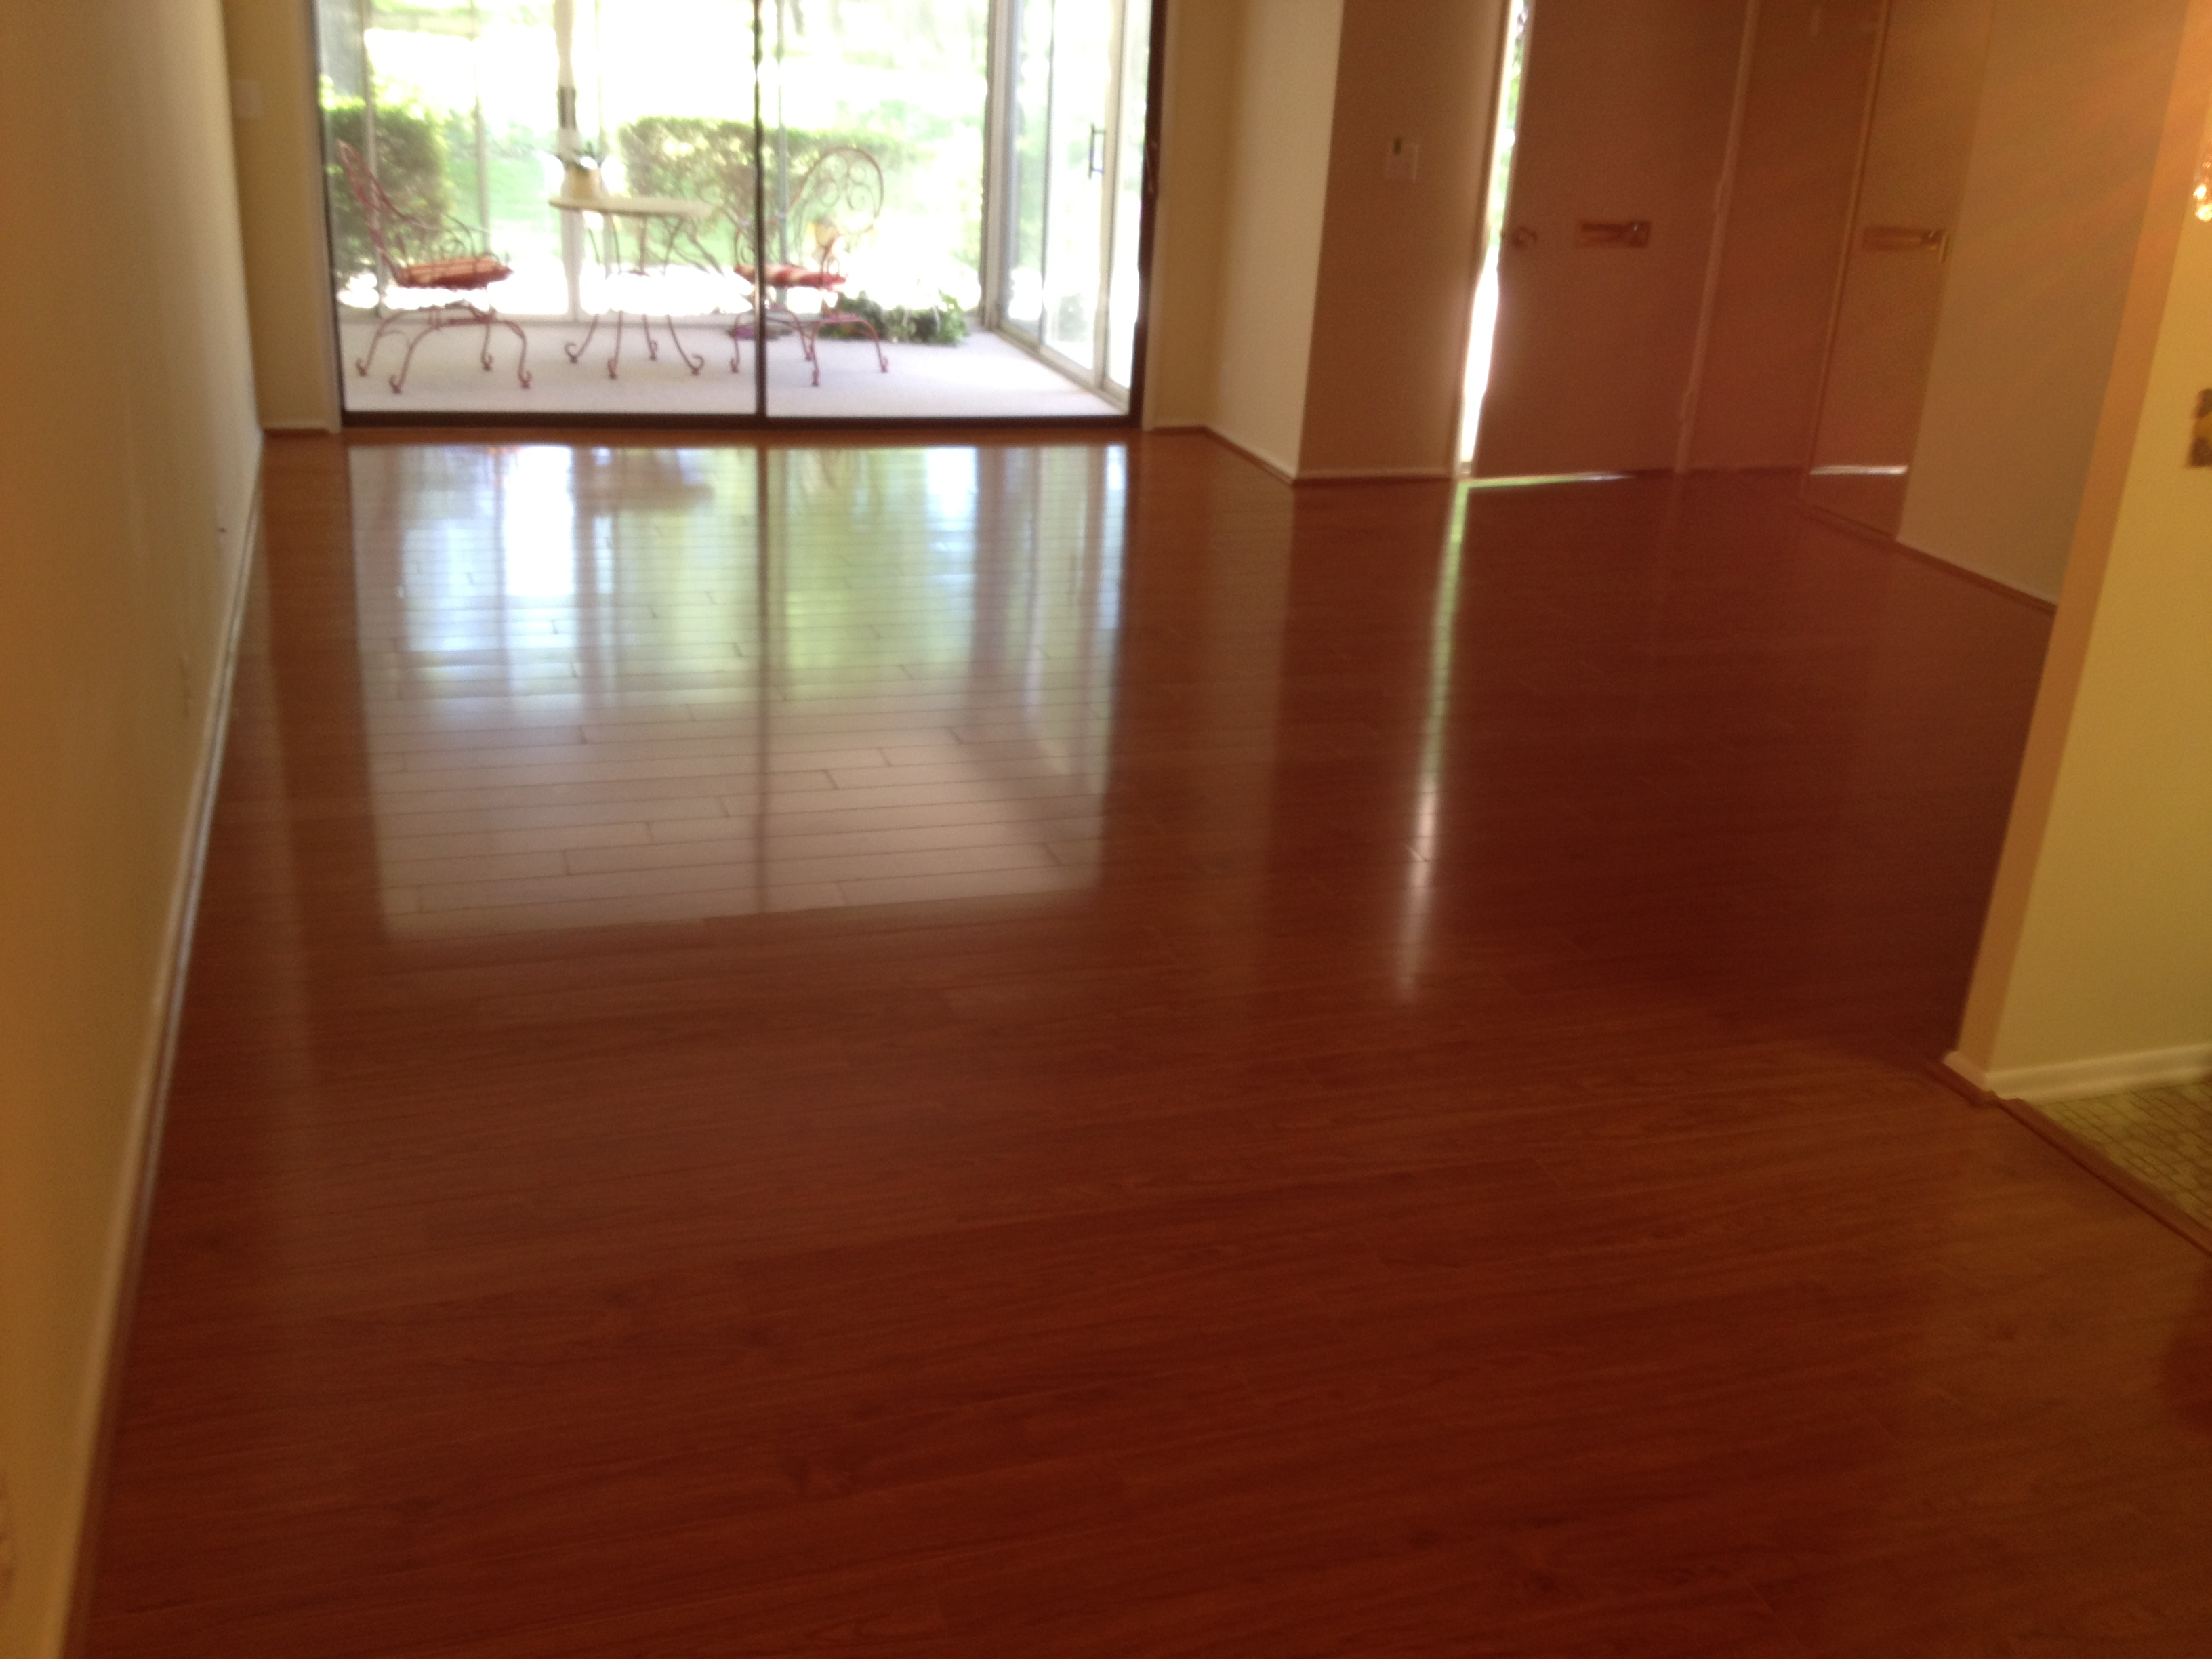 Interesting Wooden Floor By Konecto Matched With Yellow Wall And Glass Door For Home Interior Design Ideas